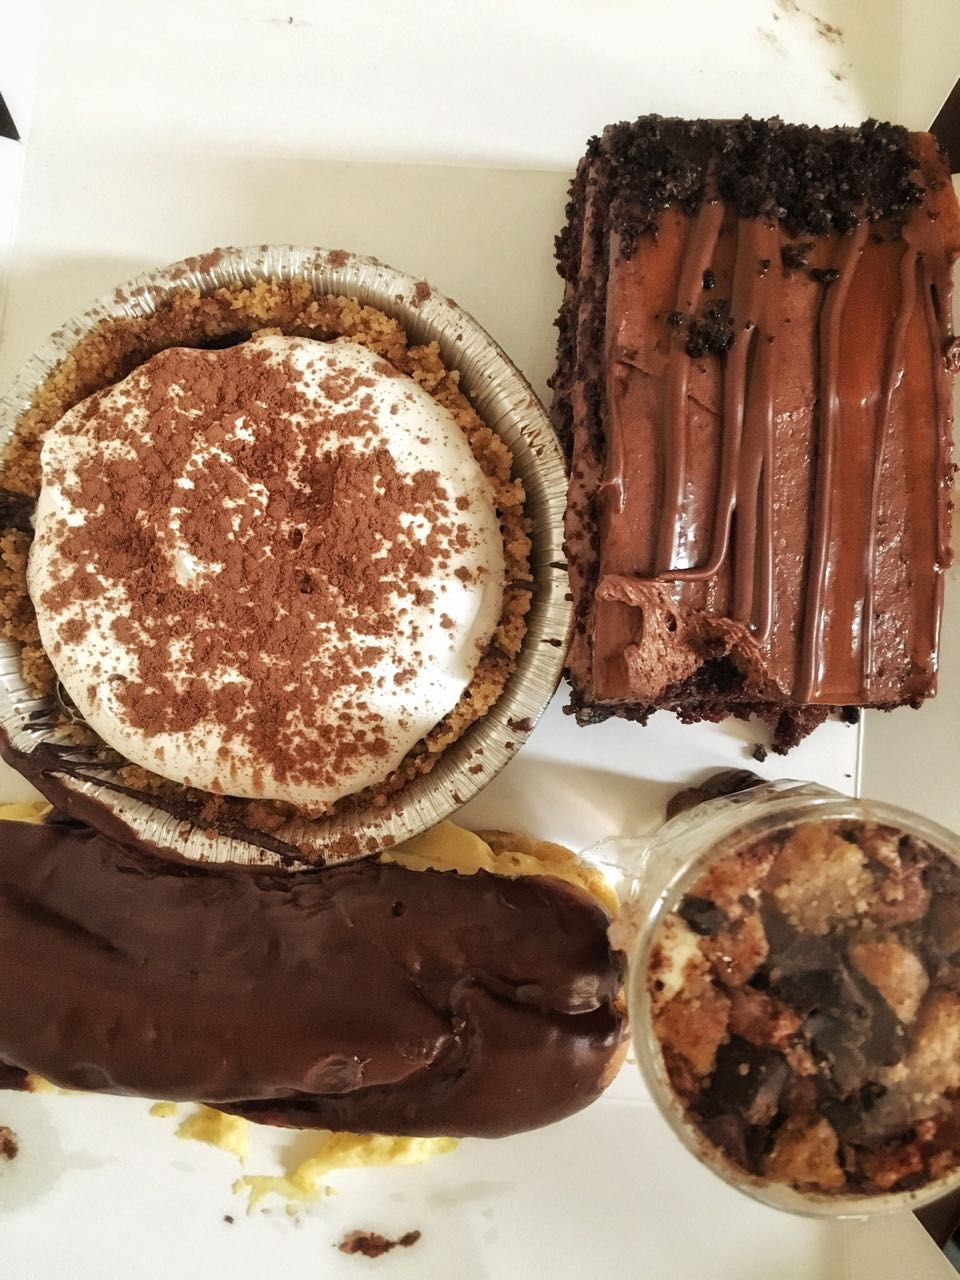 Desserts - I took a bunch of items for take away. Everything looked super delicious so wasn't sure which ones I should leave behind. Hardest decision of my life. Still need to try them so review pending.